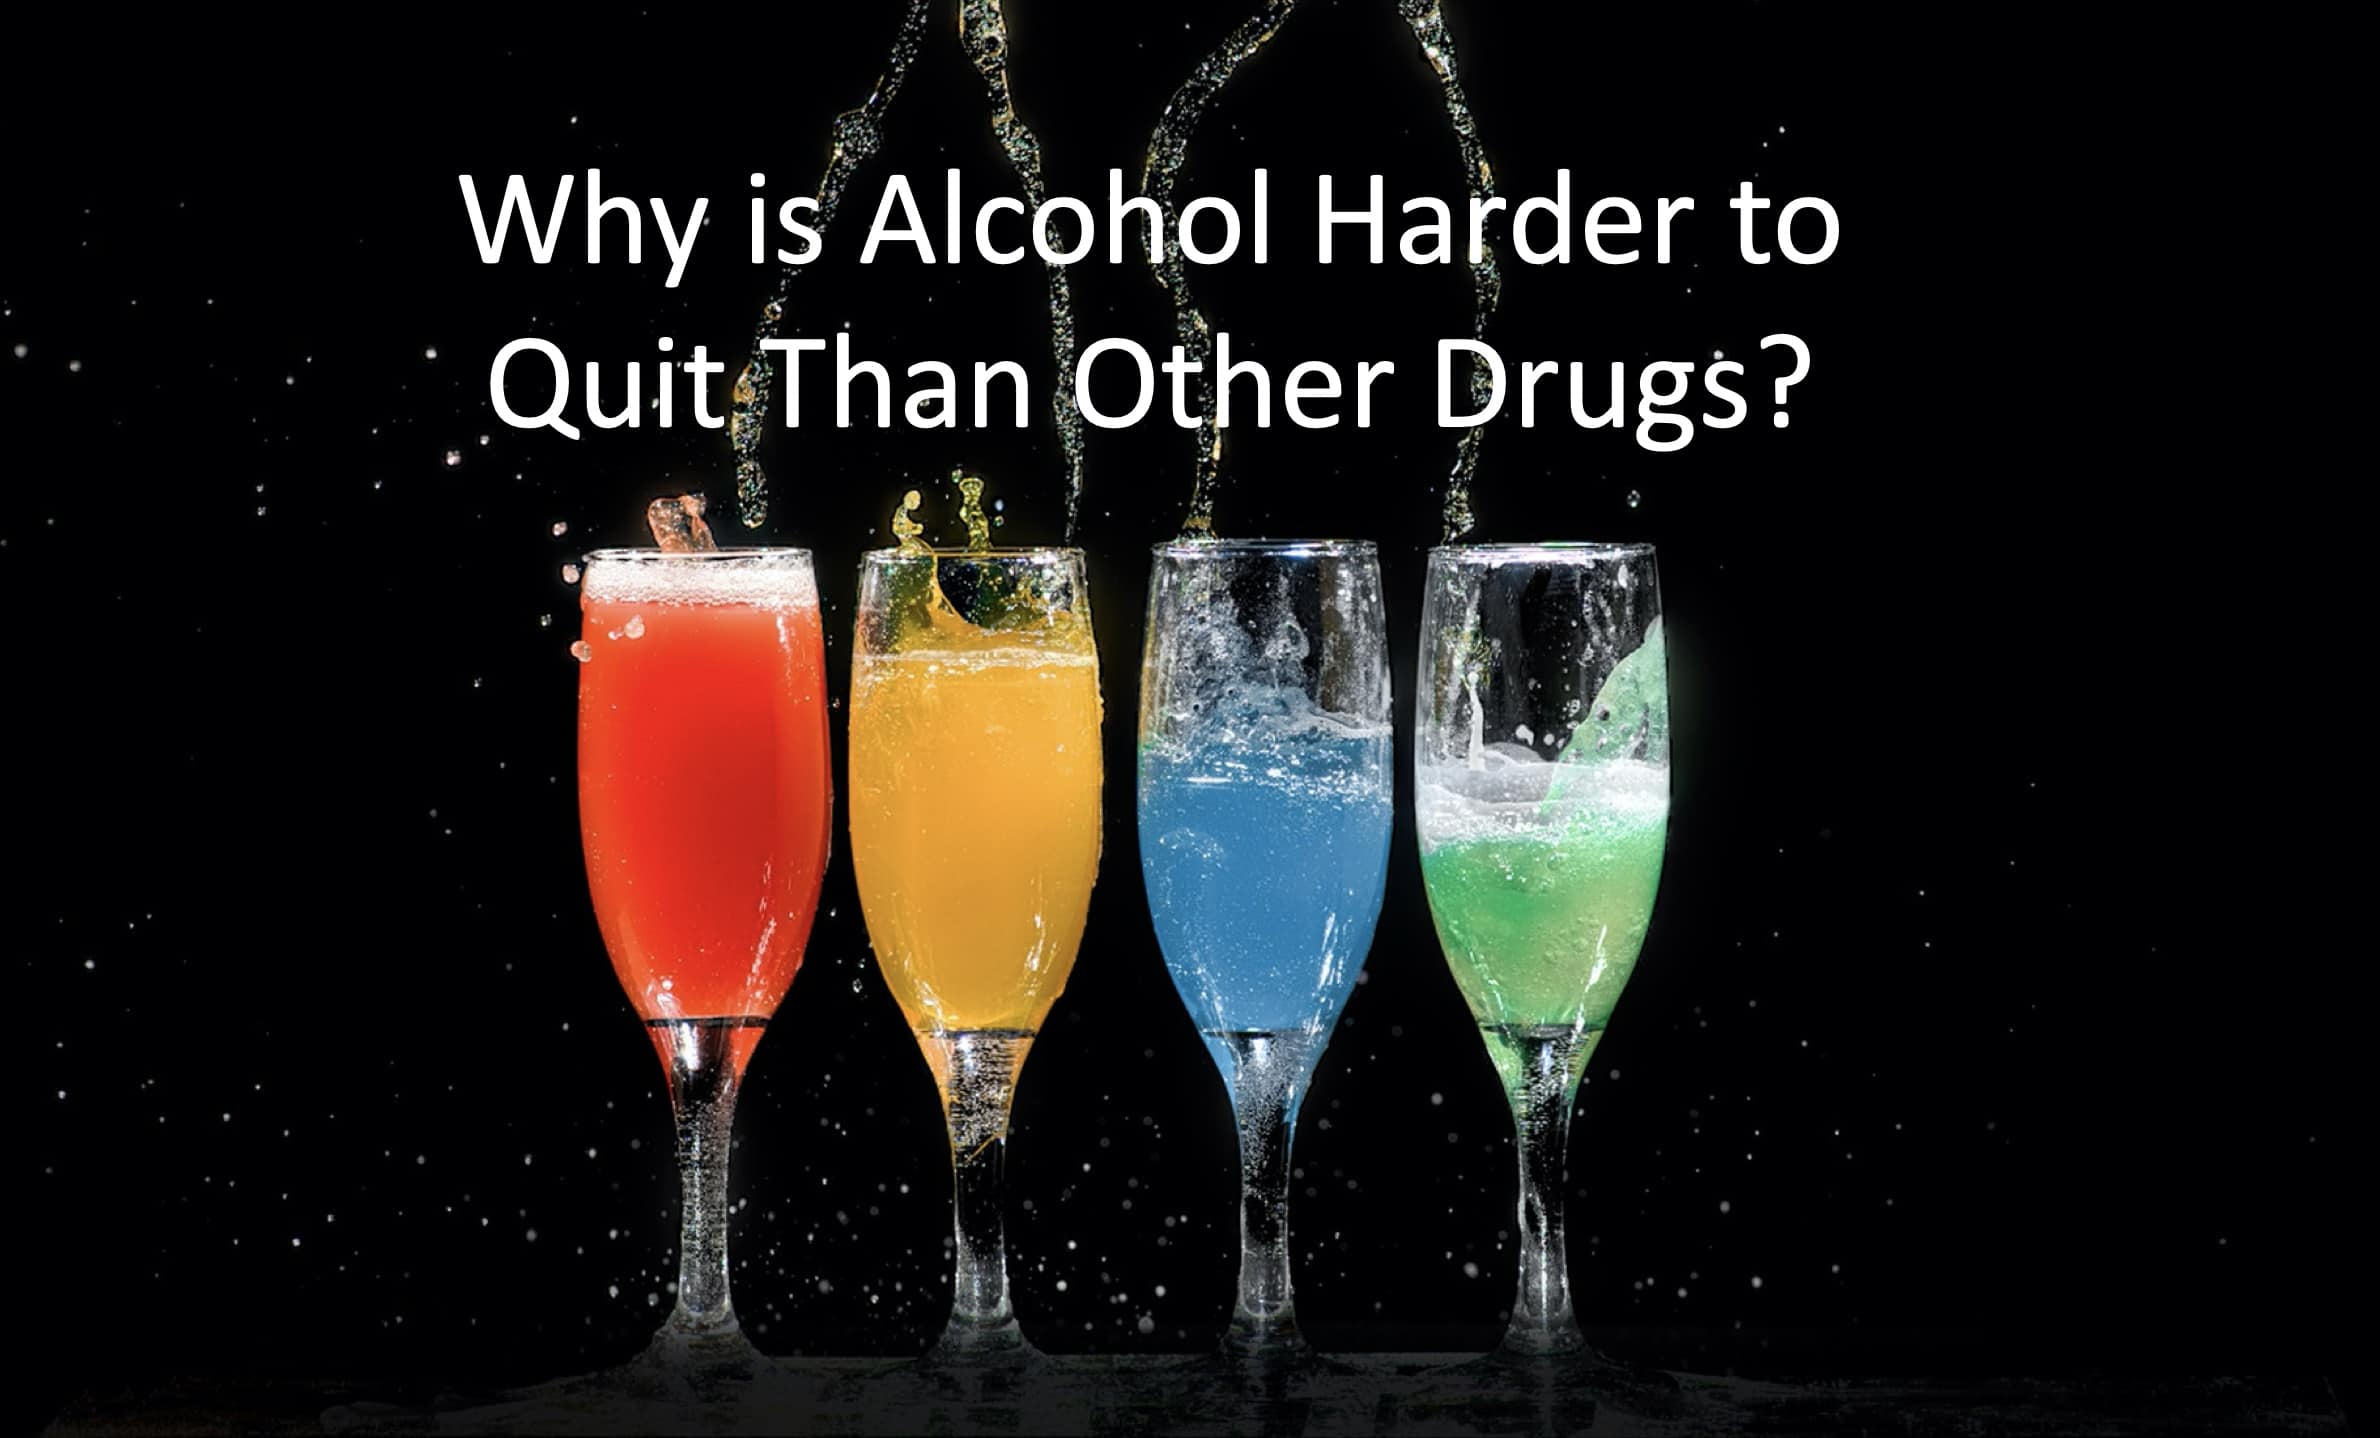 why-is-alcohol-harder-to-quit-than-other-drugs-Houston-Texas-addiction-treatment